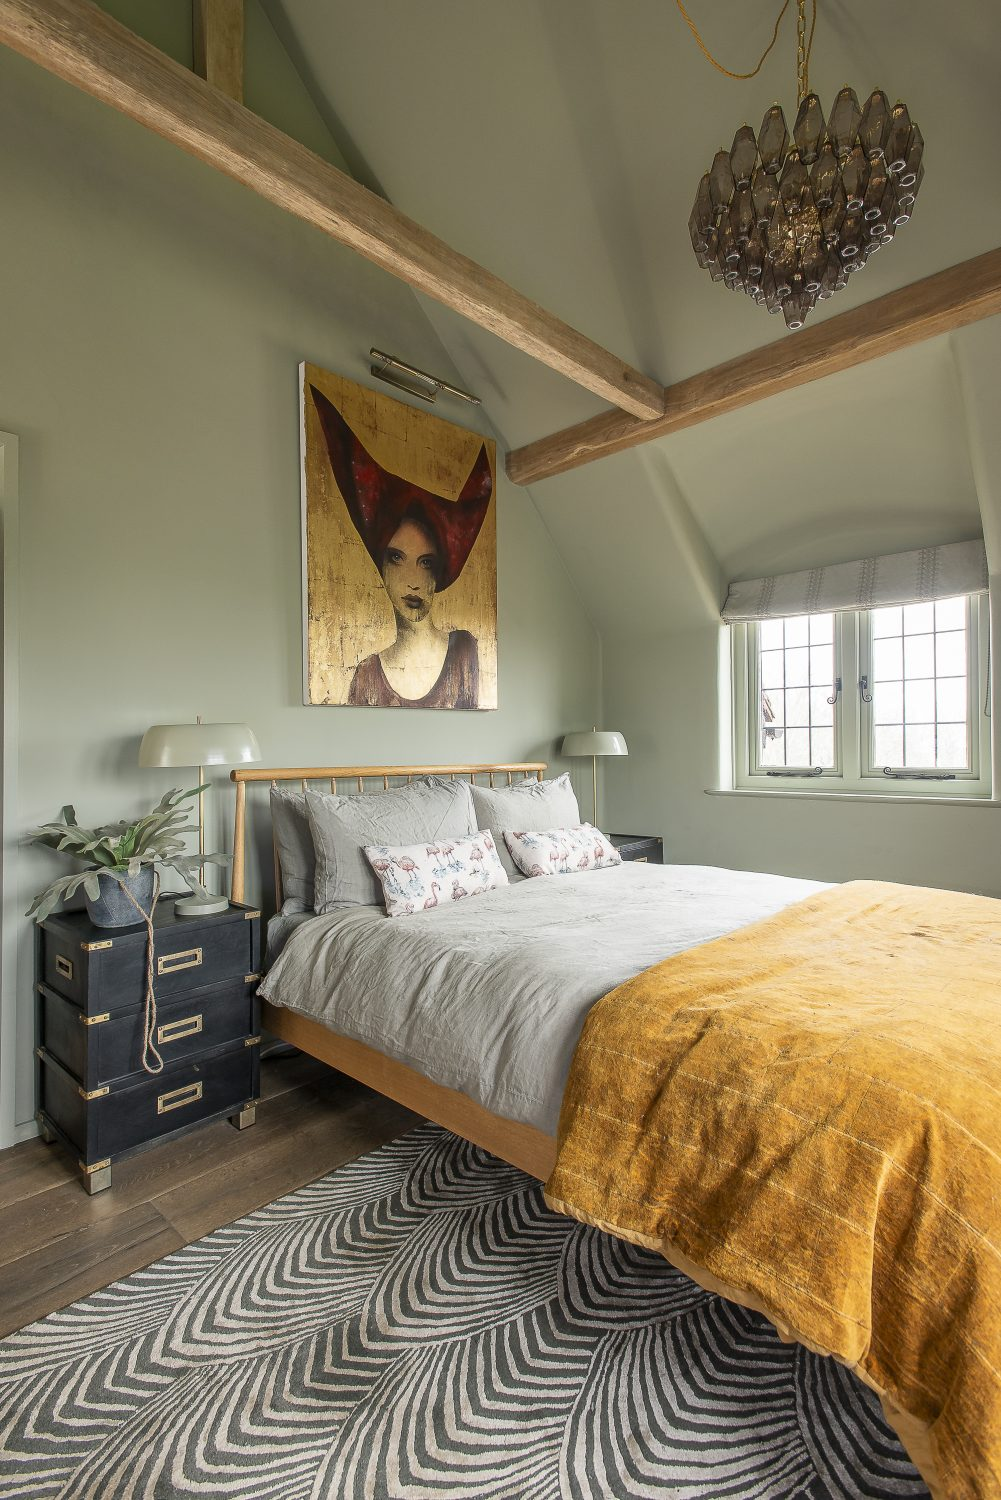 The staggering gold portrait hanging above the bed was accidentally cut in two by the builder, then thankfully salvaged by the artist